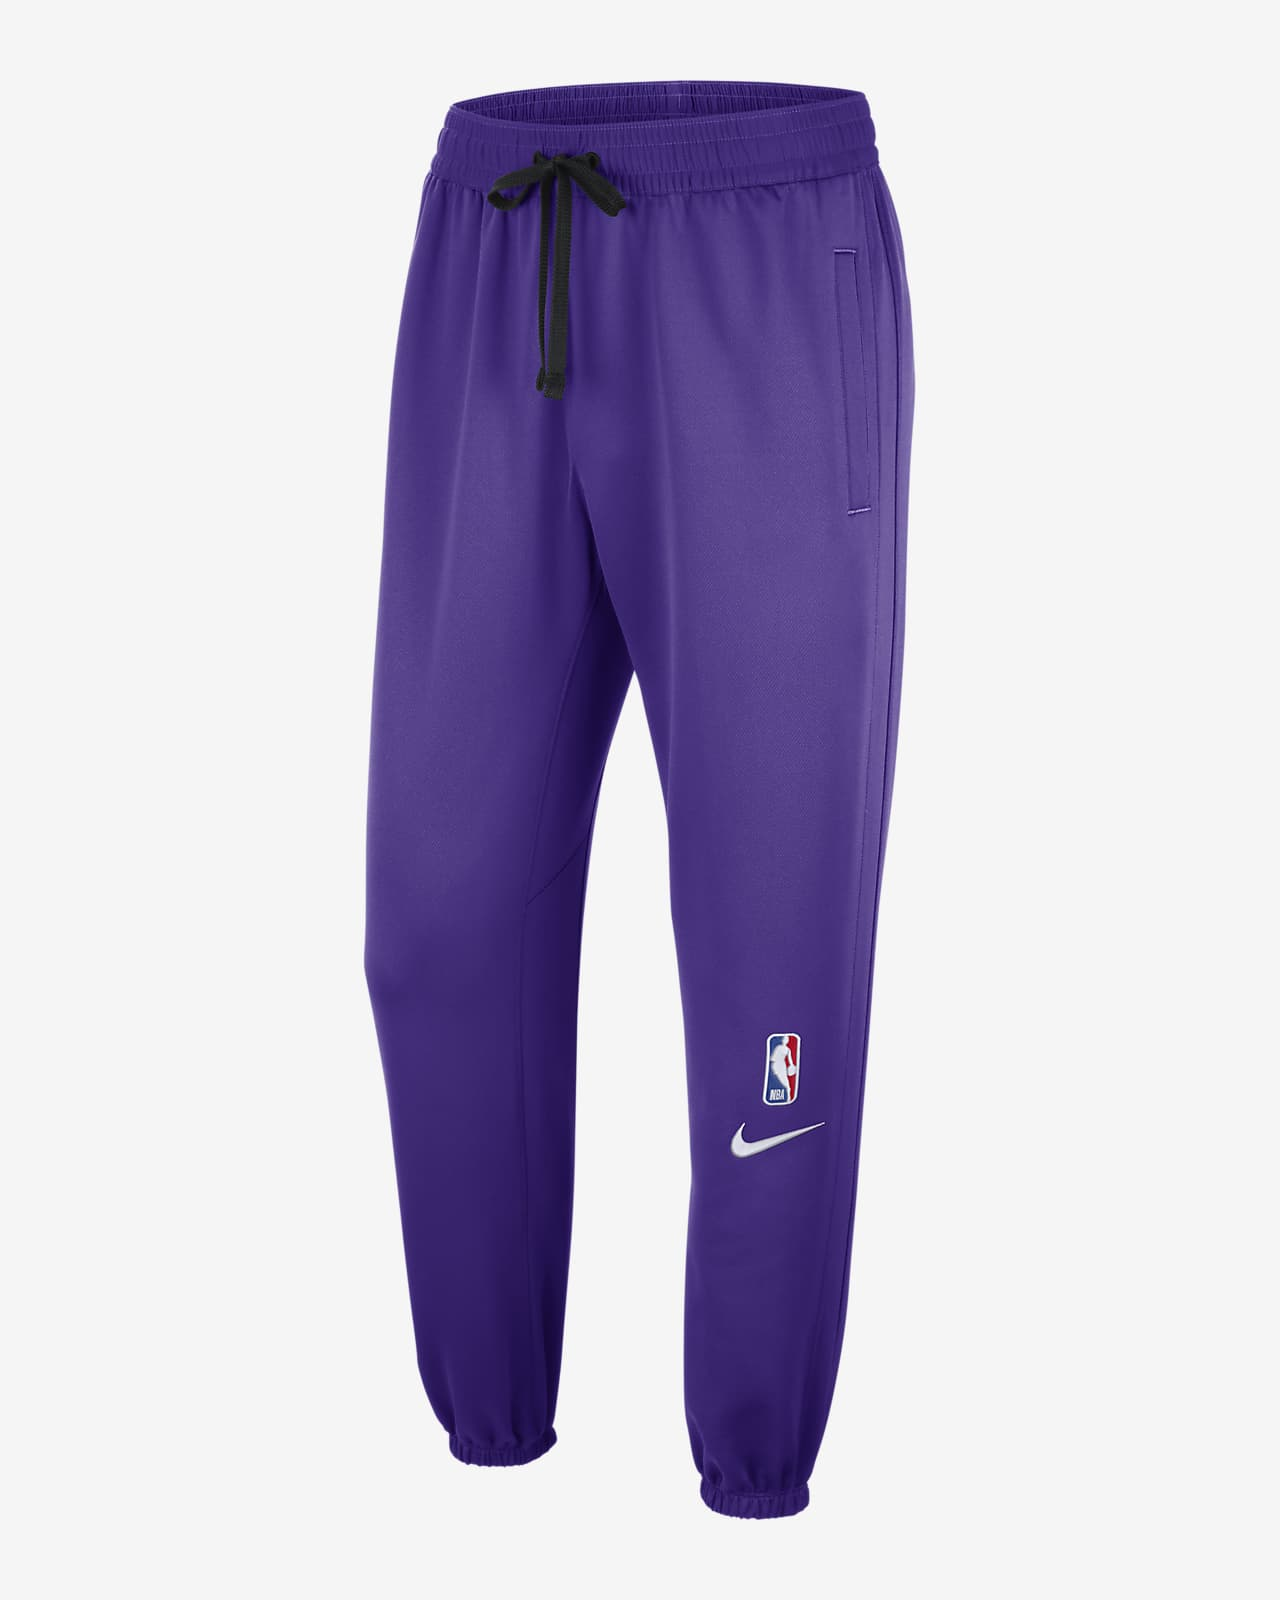 Los Angeles Lakers Showtime Men's Nike Therma Flex NBA Trousers